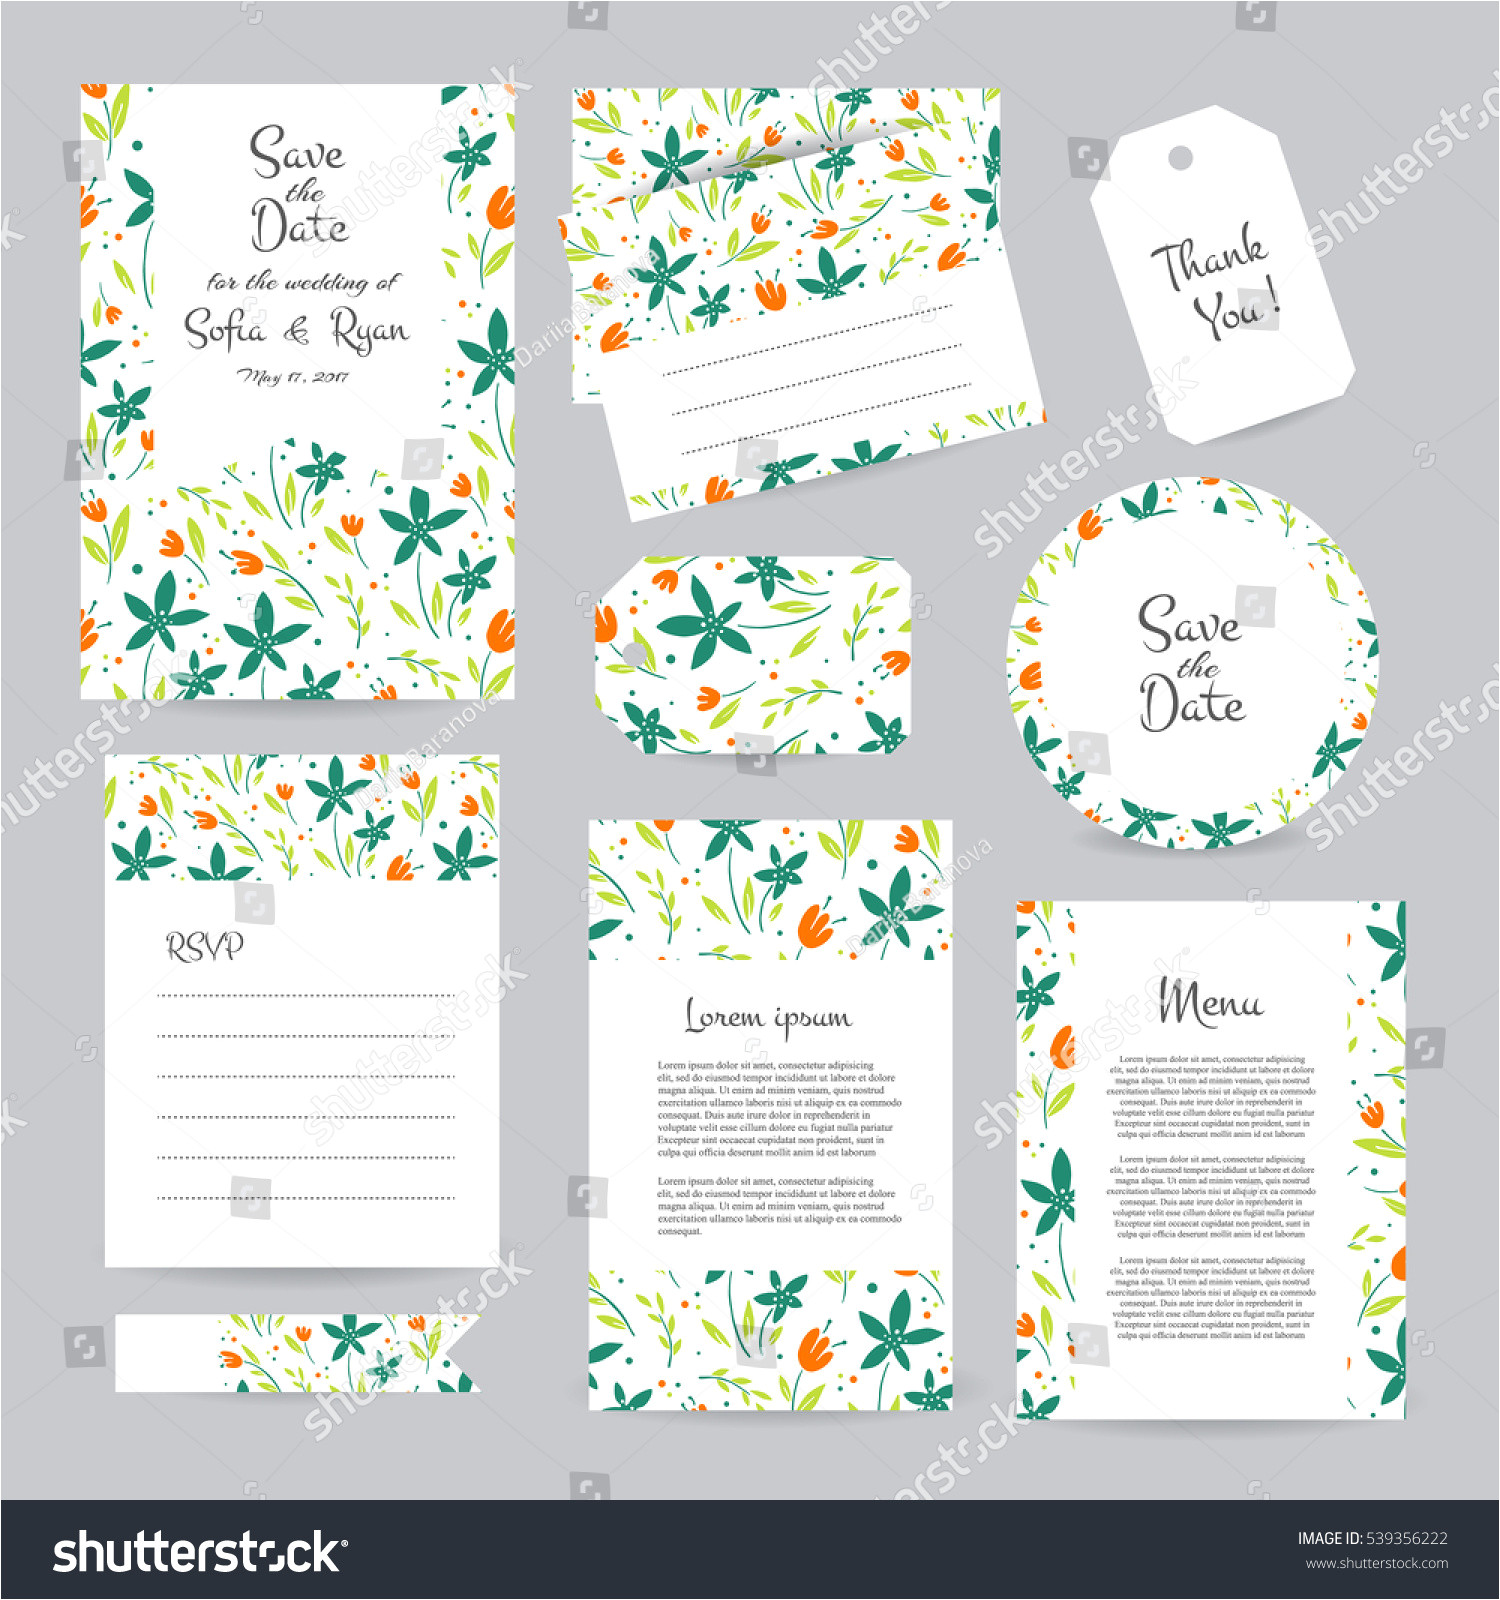 stock vector vector gentle wedding cards template with flower design wedding invitation or save the date rsvp 539356222 jpg